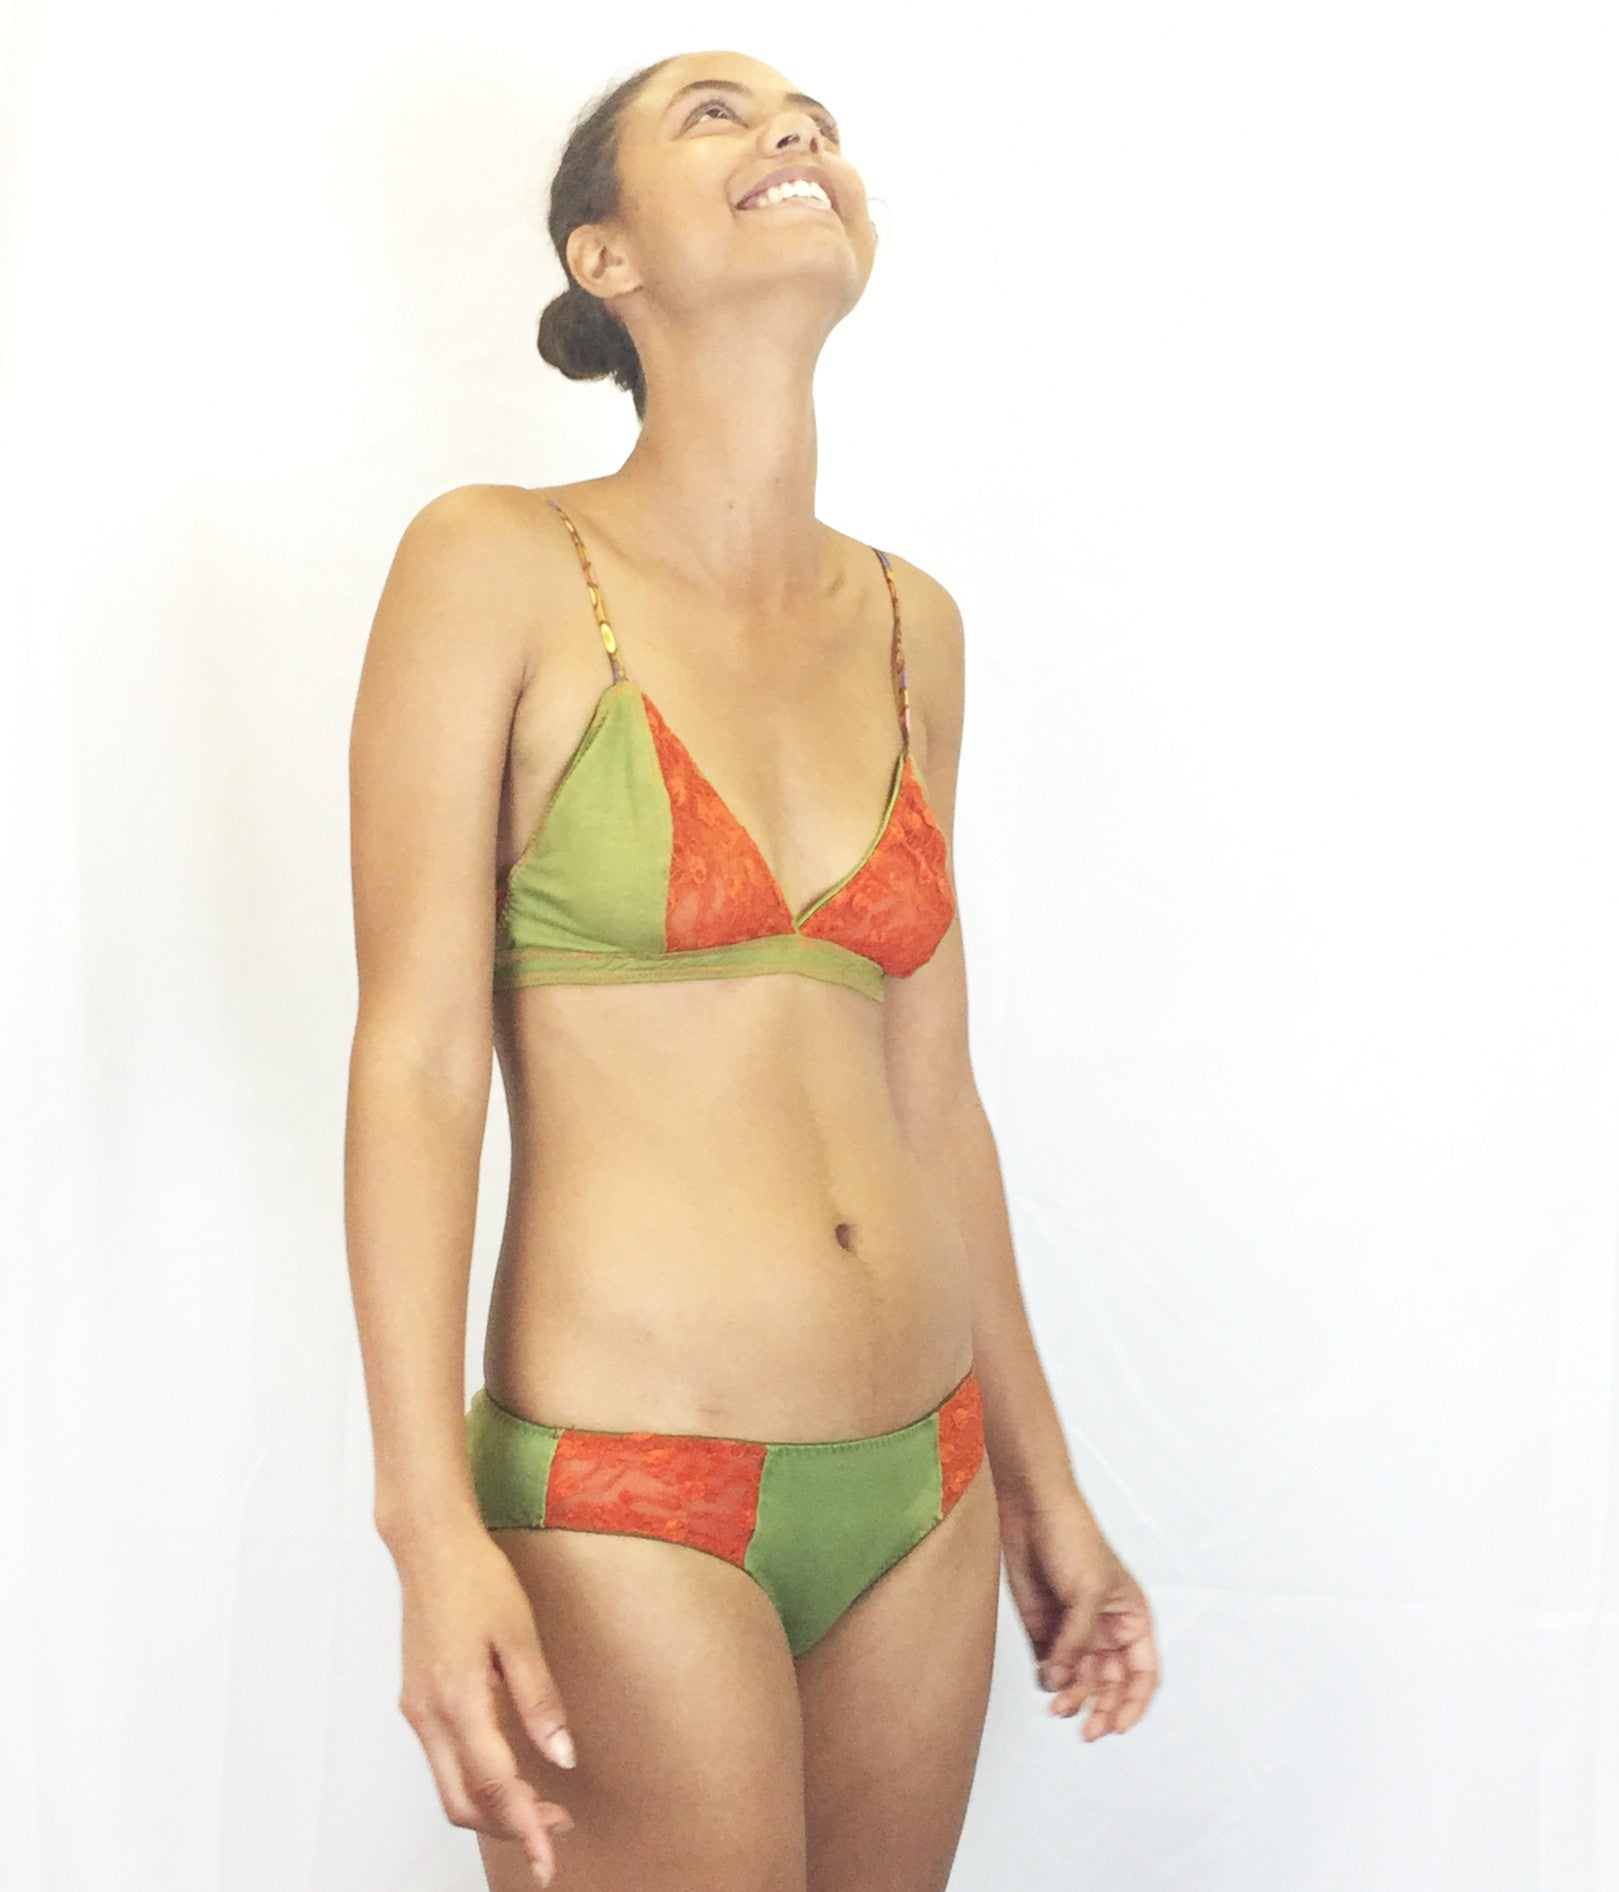 Larkspur - Hazel - Organic Cotton Bra and Panties Set - Olive/Tangerine